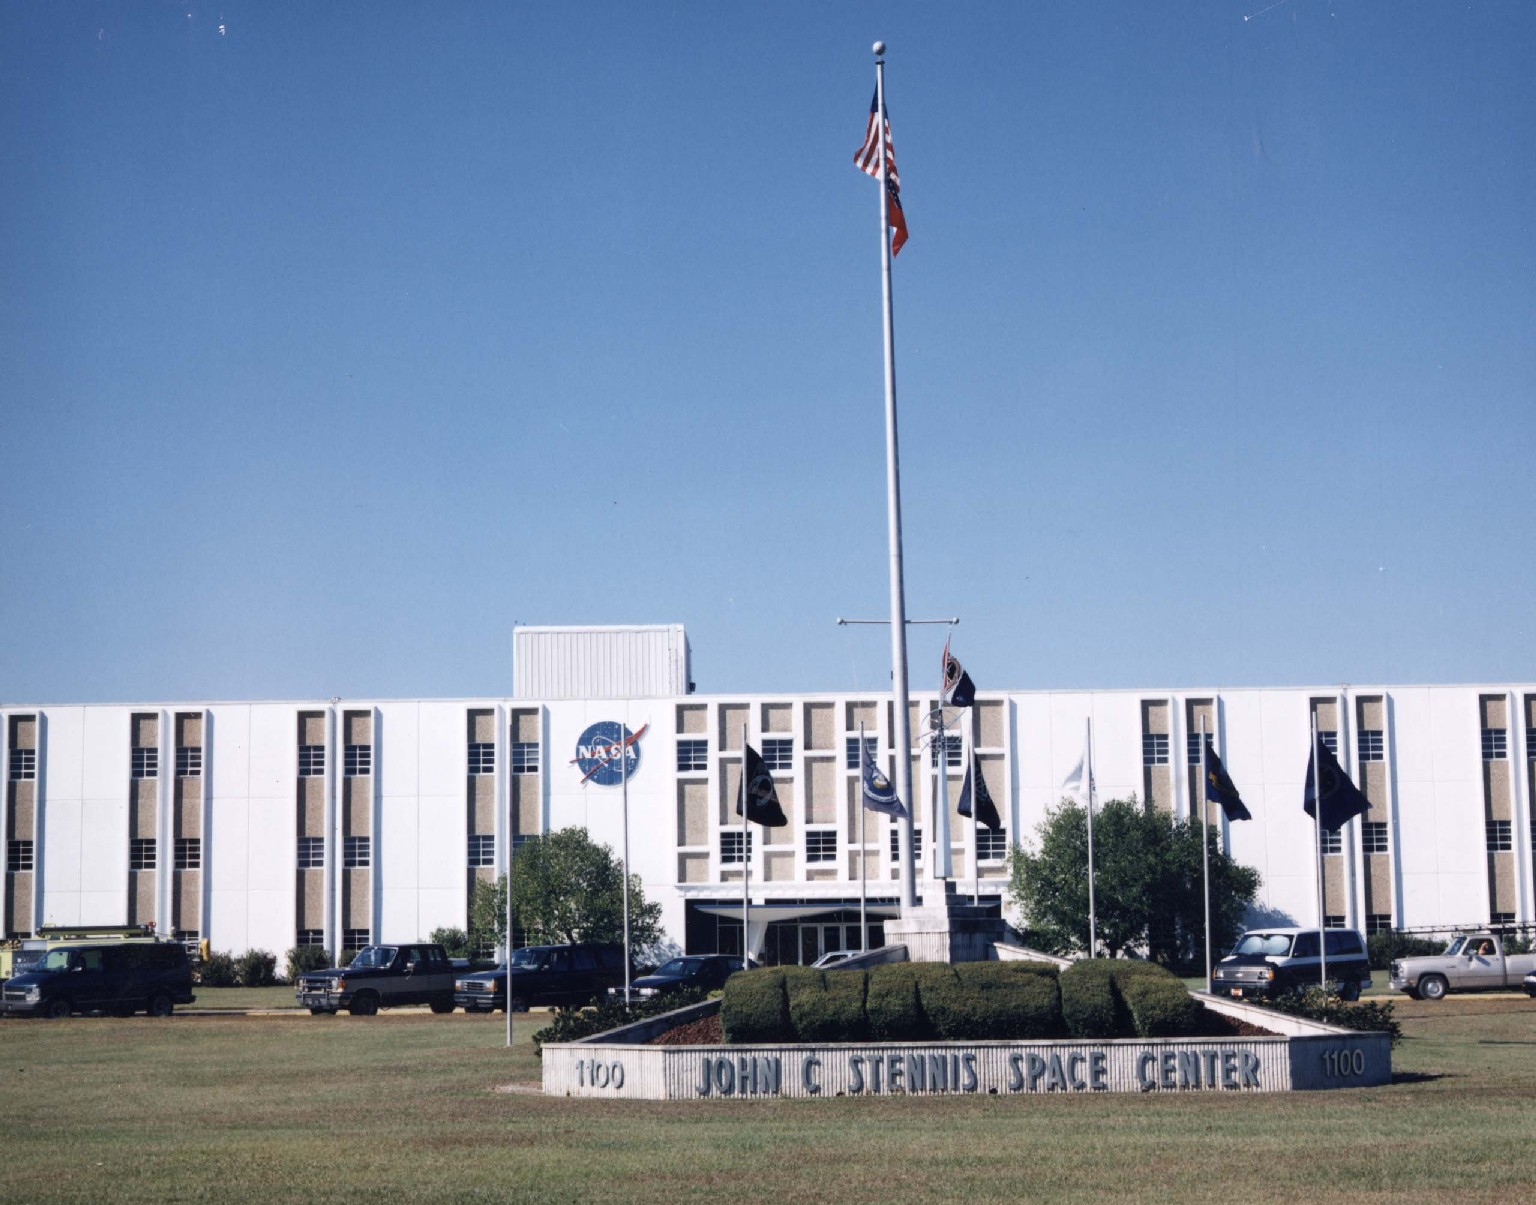 John C Stennis Space Center : Rotary national award for space achievement rnasa